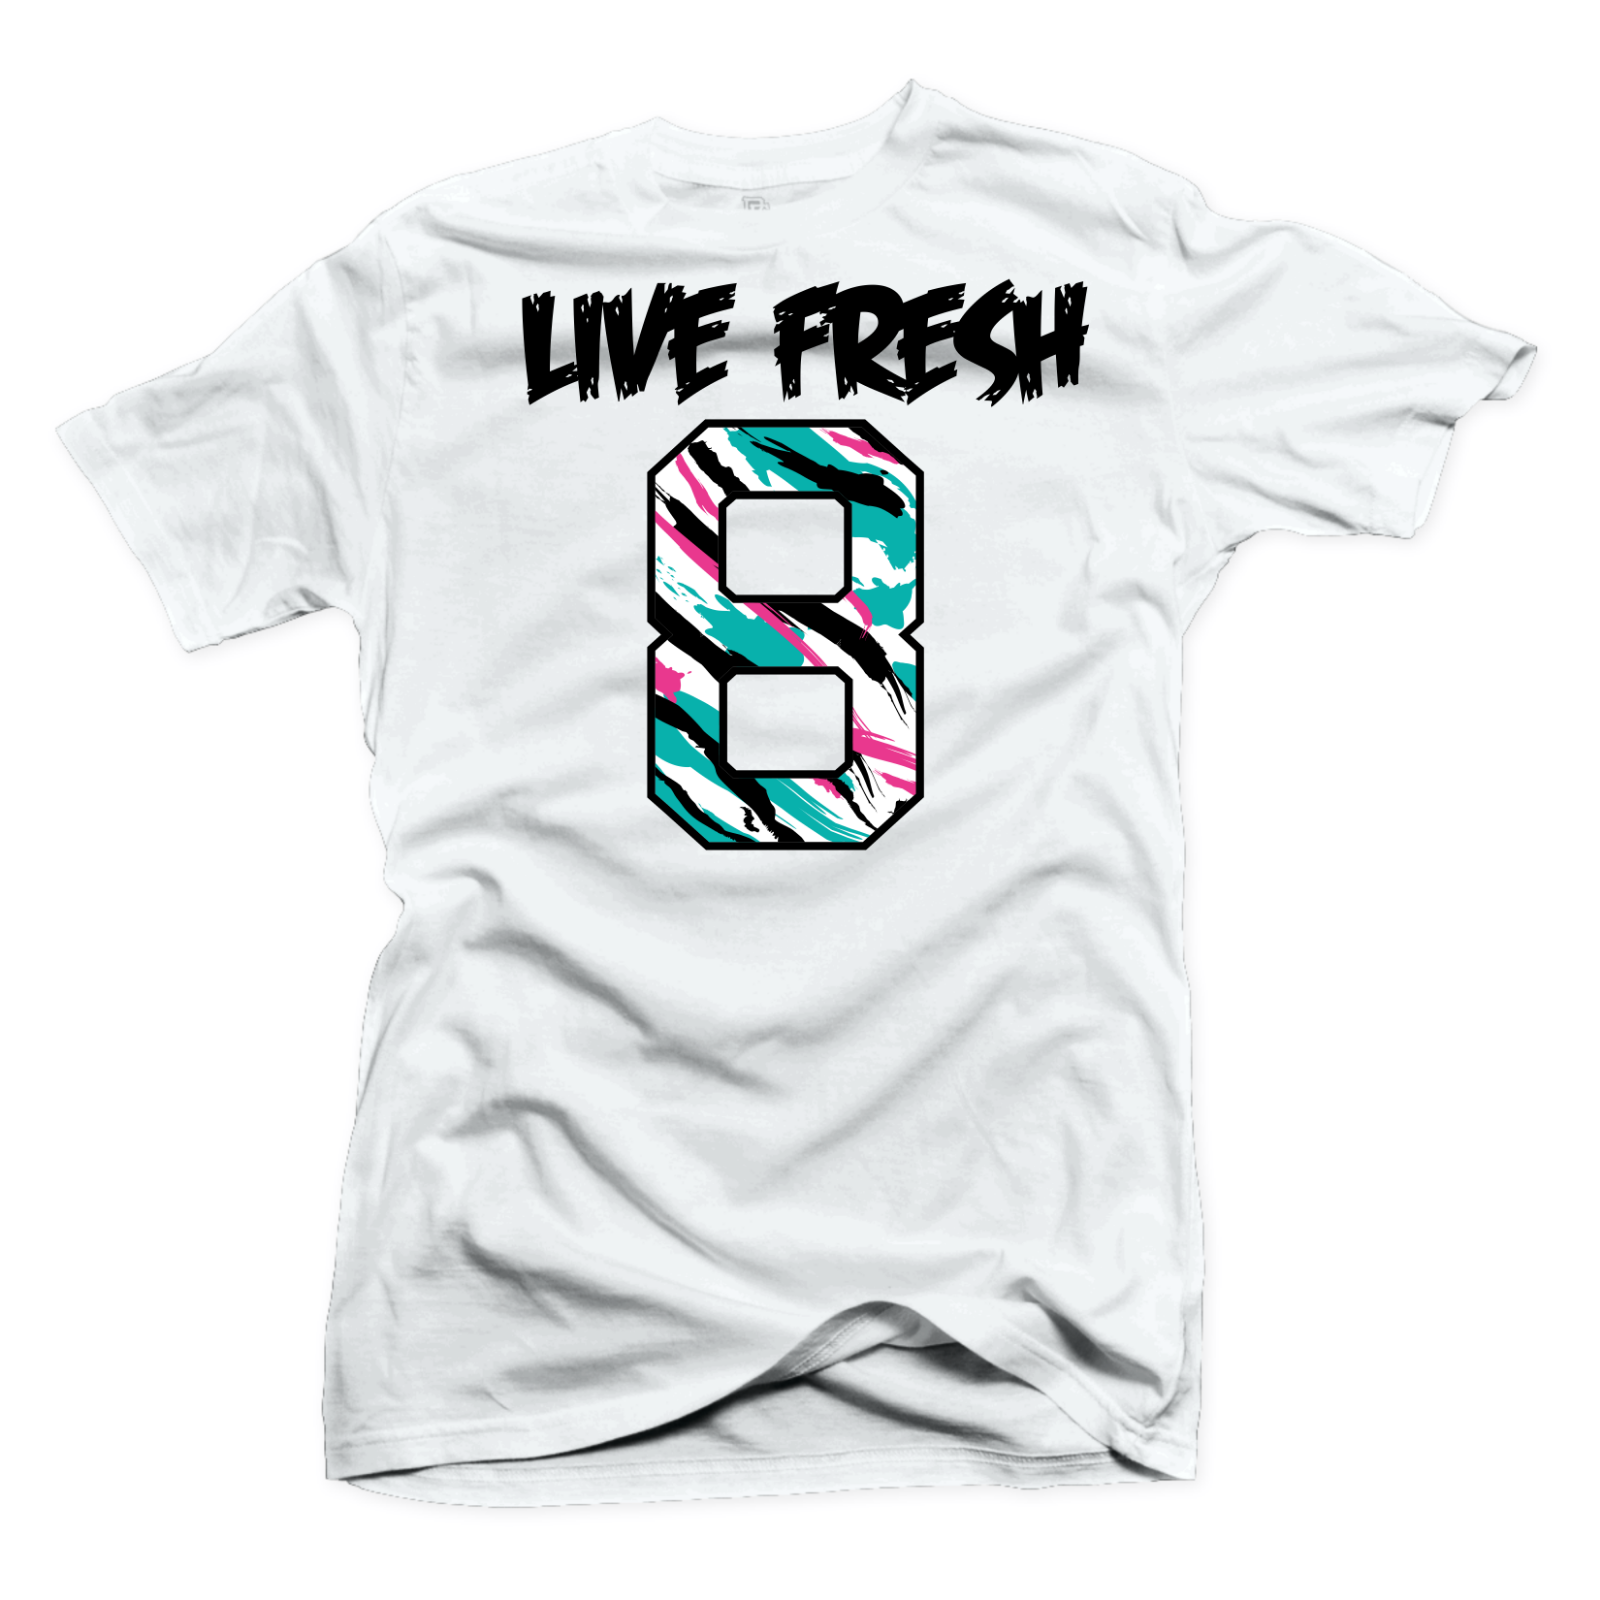 6d47b17e1b803 SHIRT TO MATCH Jordan 8 South Beach-Live Fresh White Tee